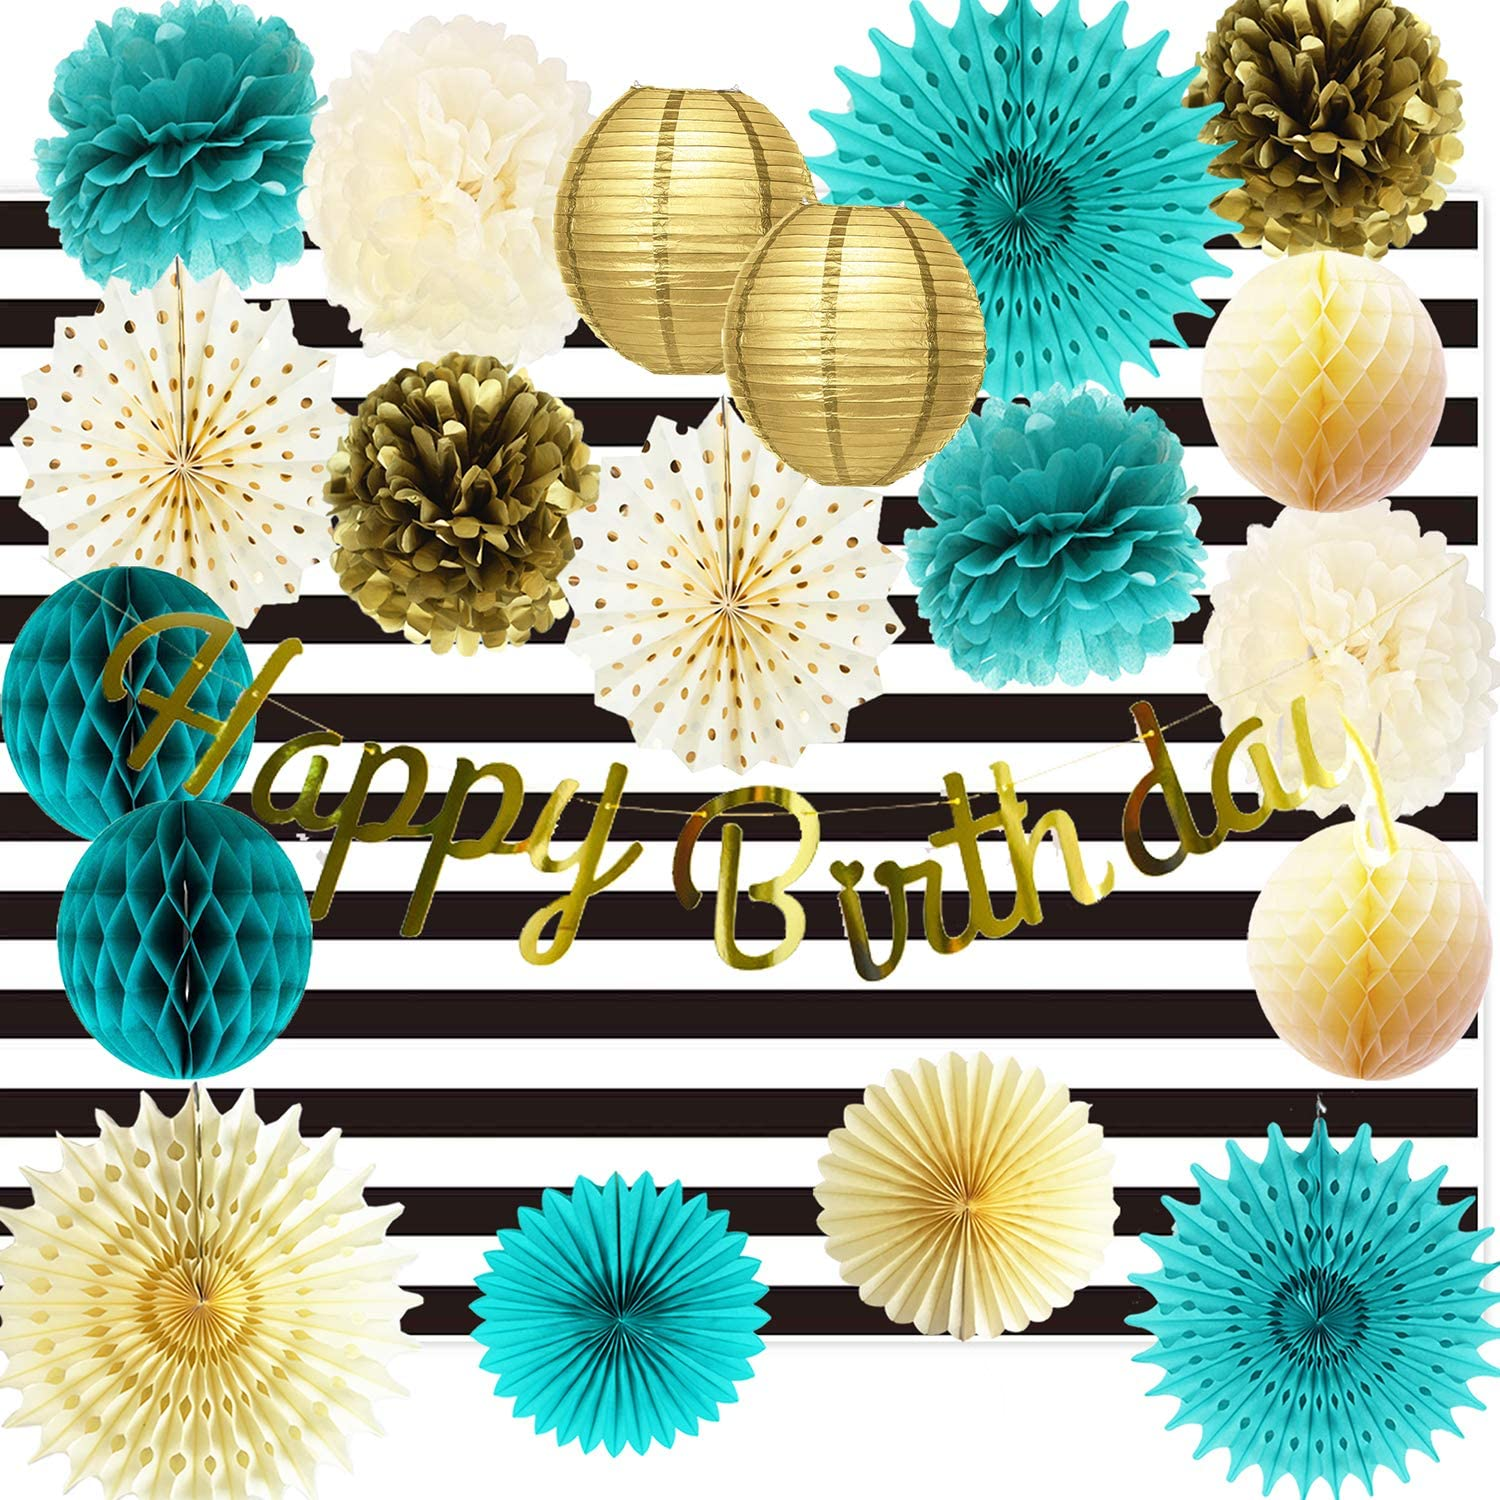 Birthday Decorations for Women Teal Gold Birthdays Gold Polka Dot Paper Fans Gold Happy Birthday Banner/White Black Strip Fabric Photography Backdrop for Women Teal Gold Birthday Decorations